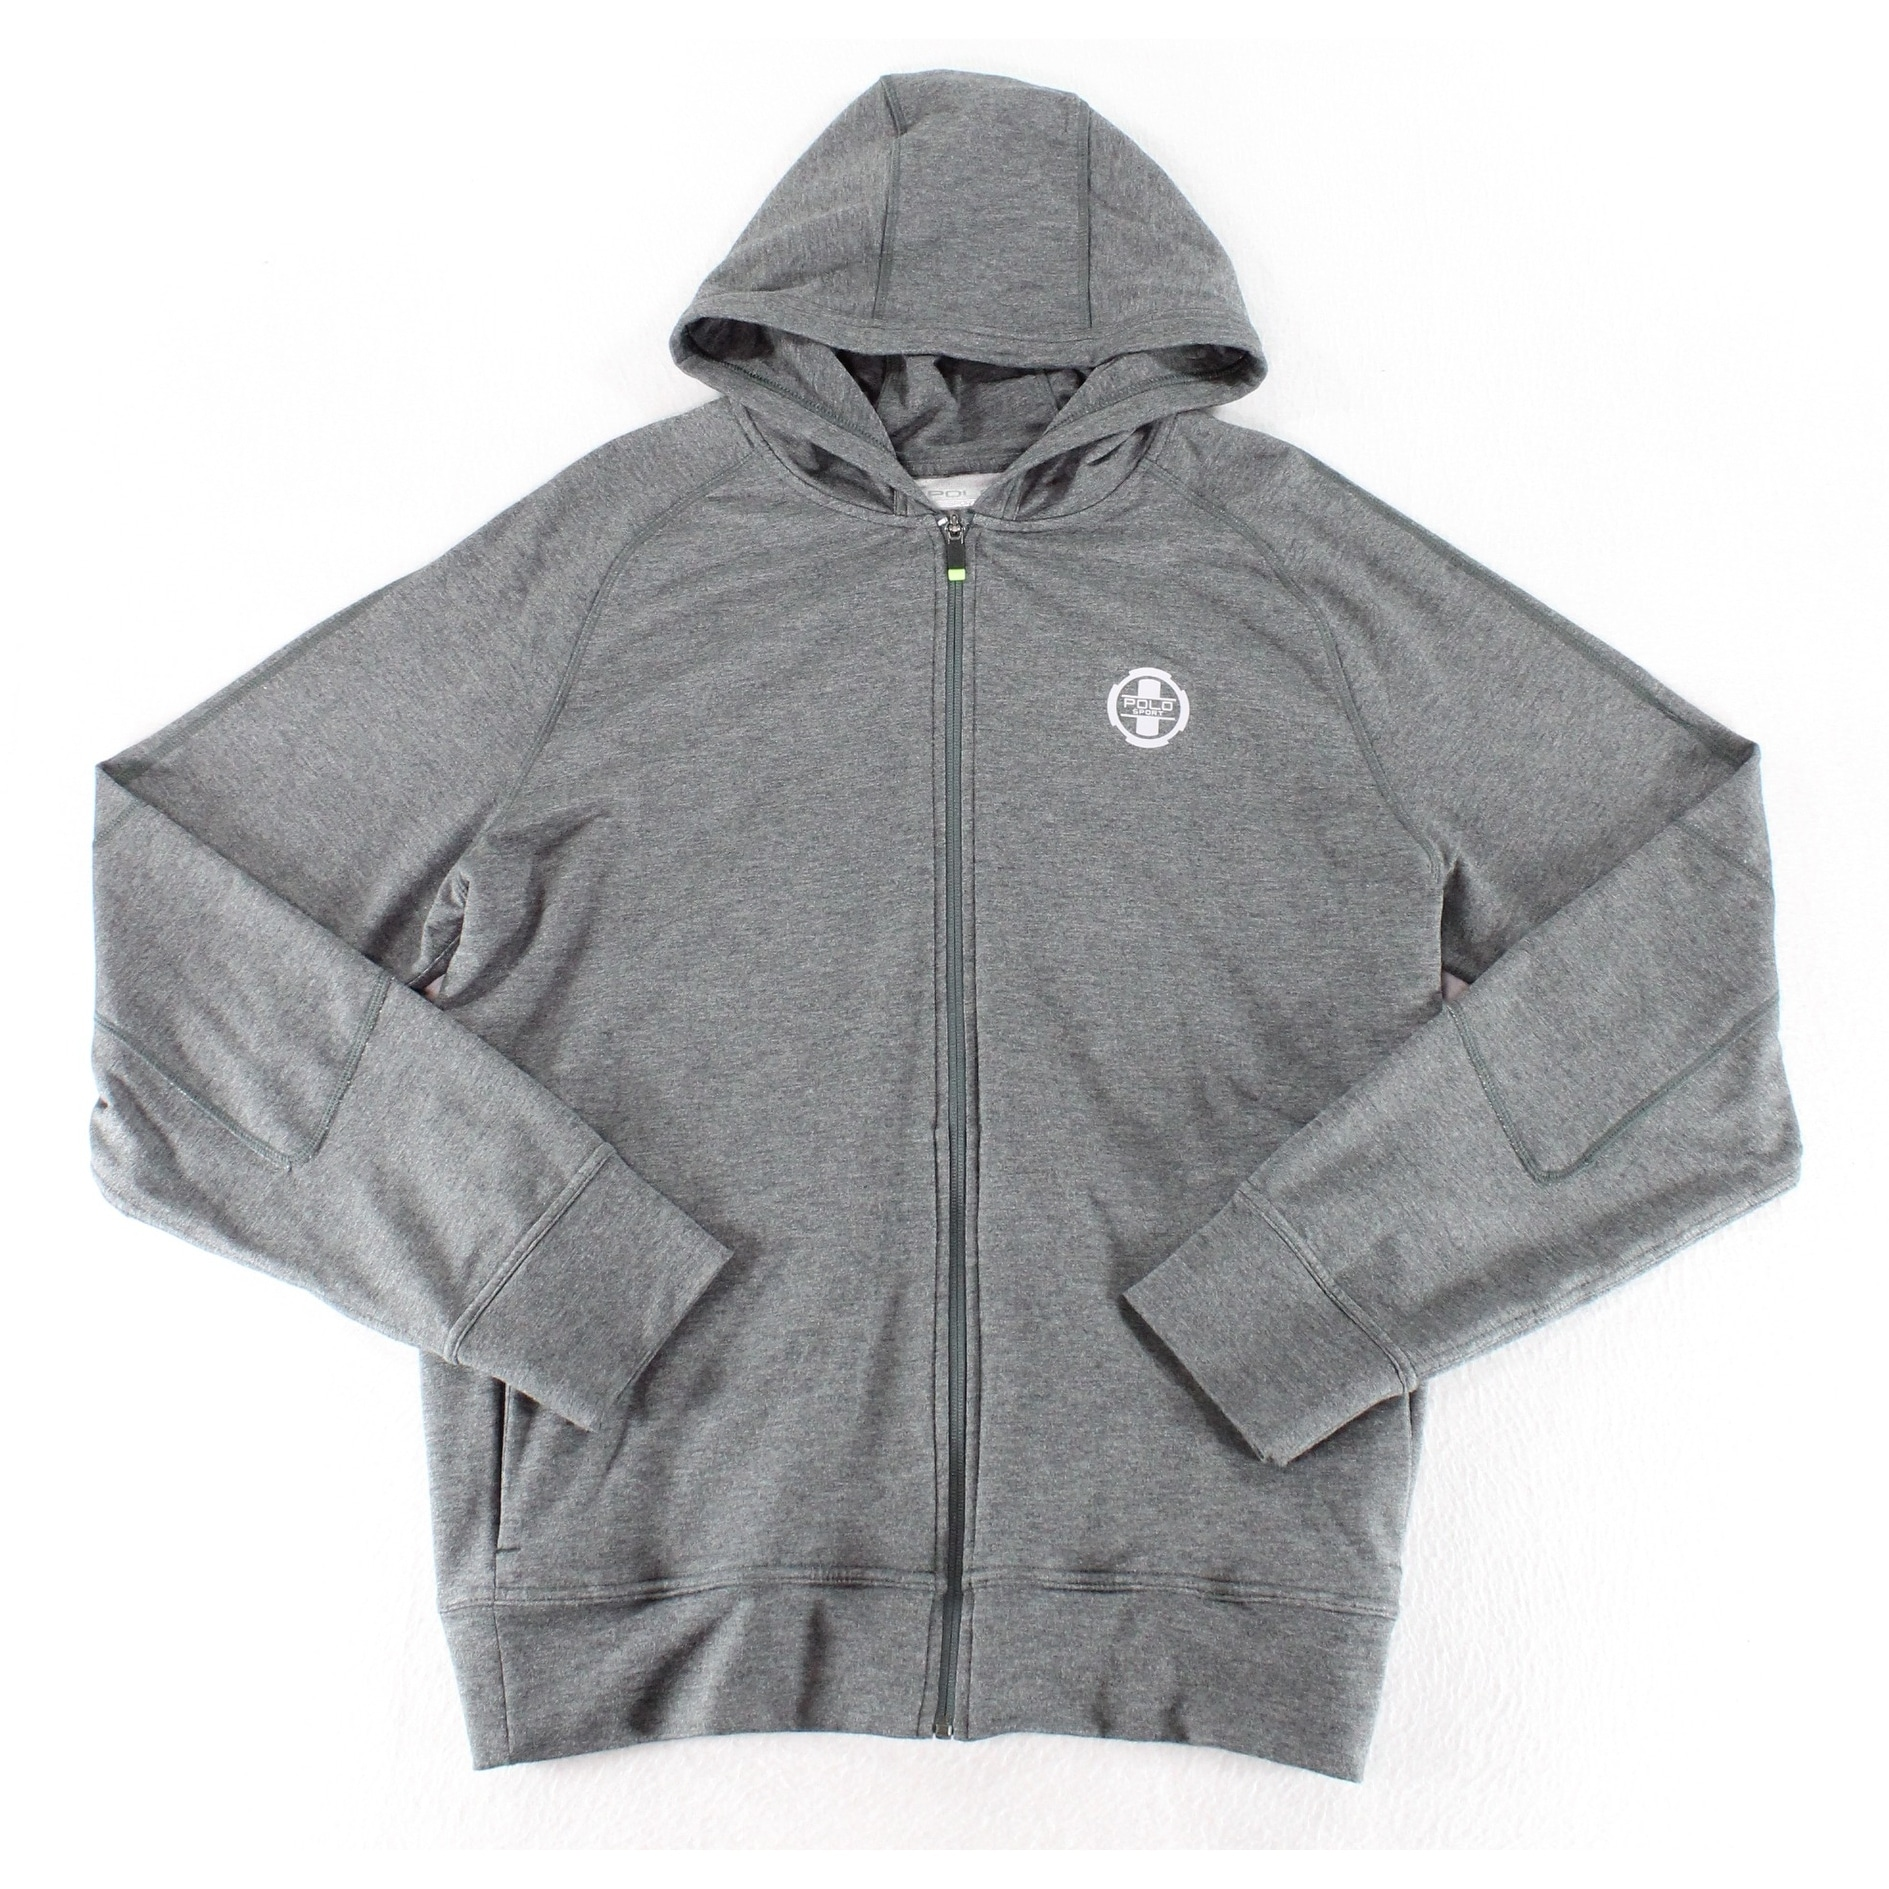 3eeac58b0 Shop Polo Ralph Lauren Sport NEW Gray Mens Size XL Full-Zip Hooded Jacket -  Free Shipping On Orders Over  45 - Overstock - 20699471